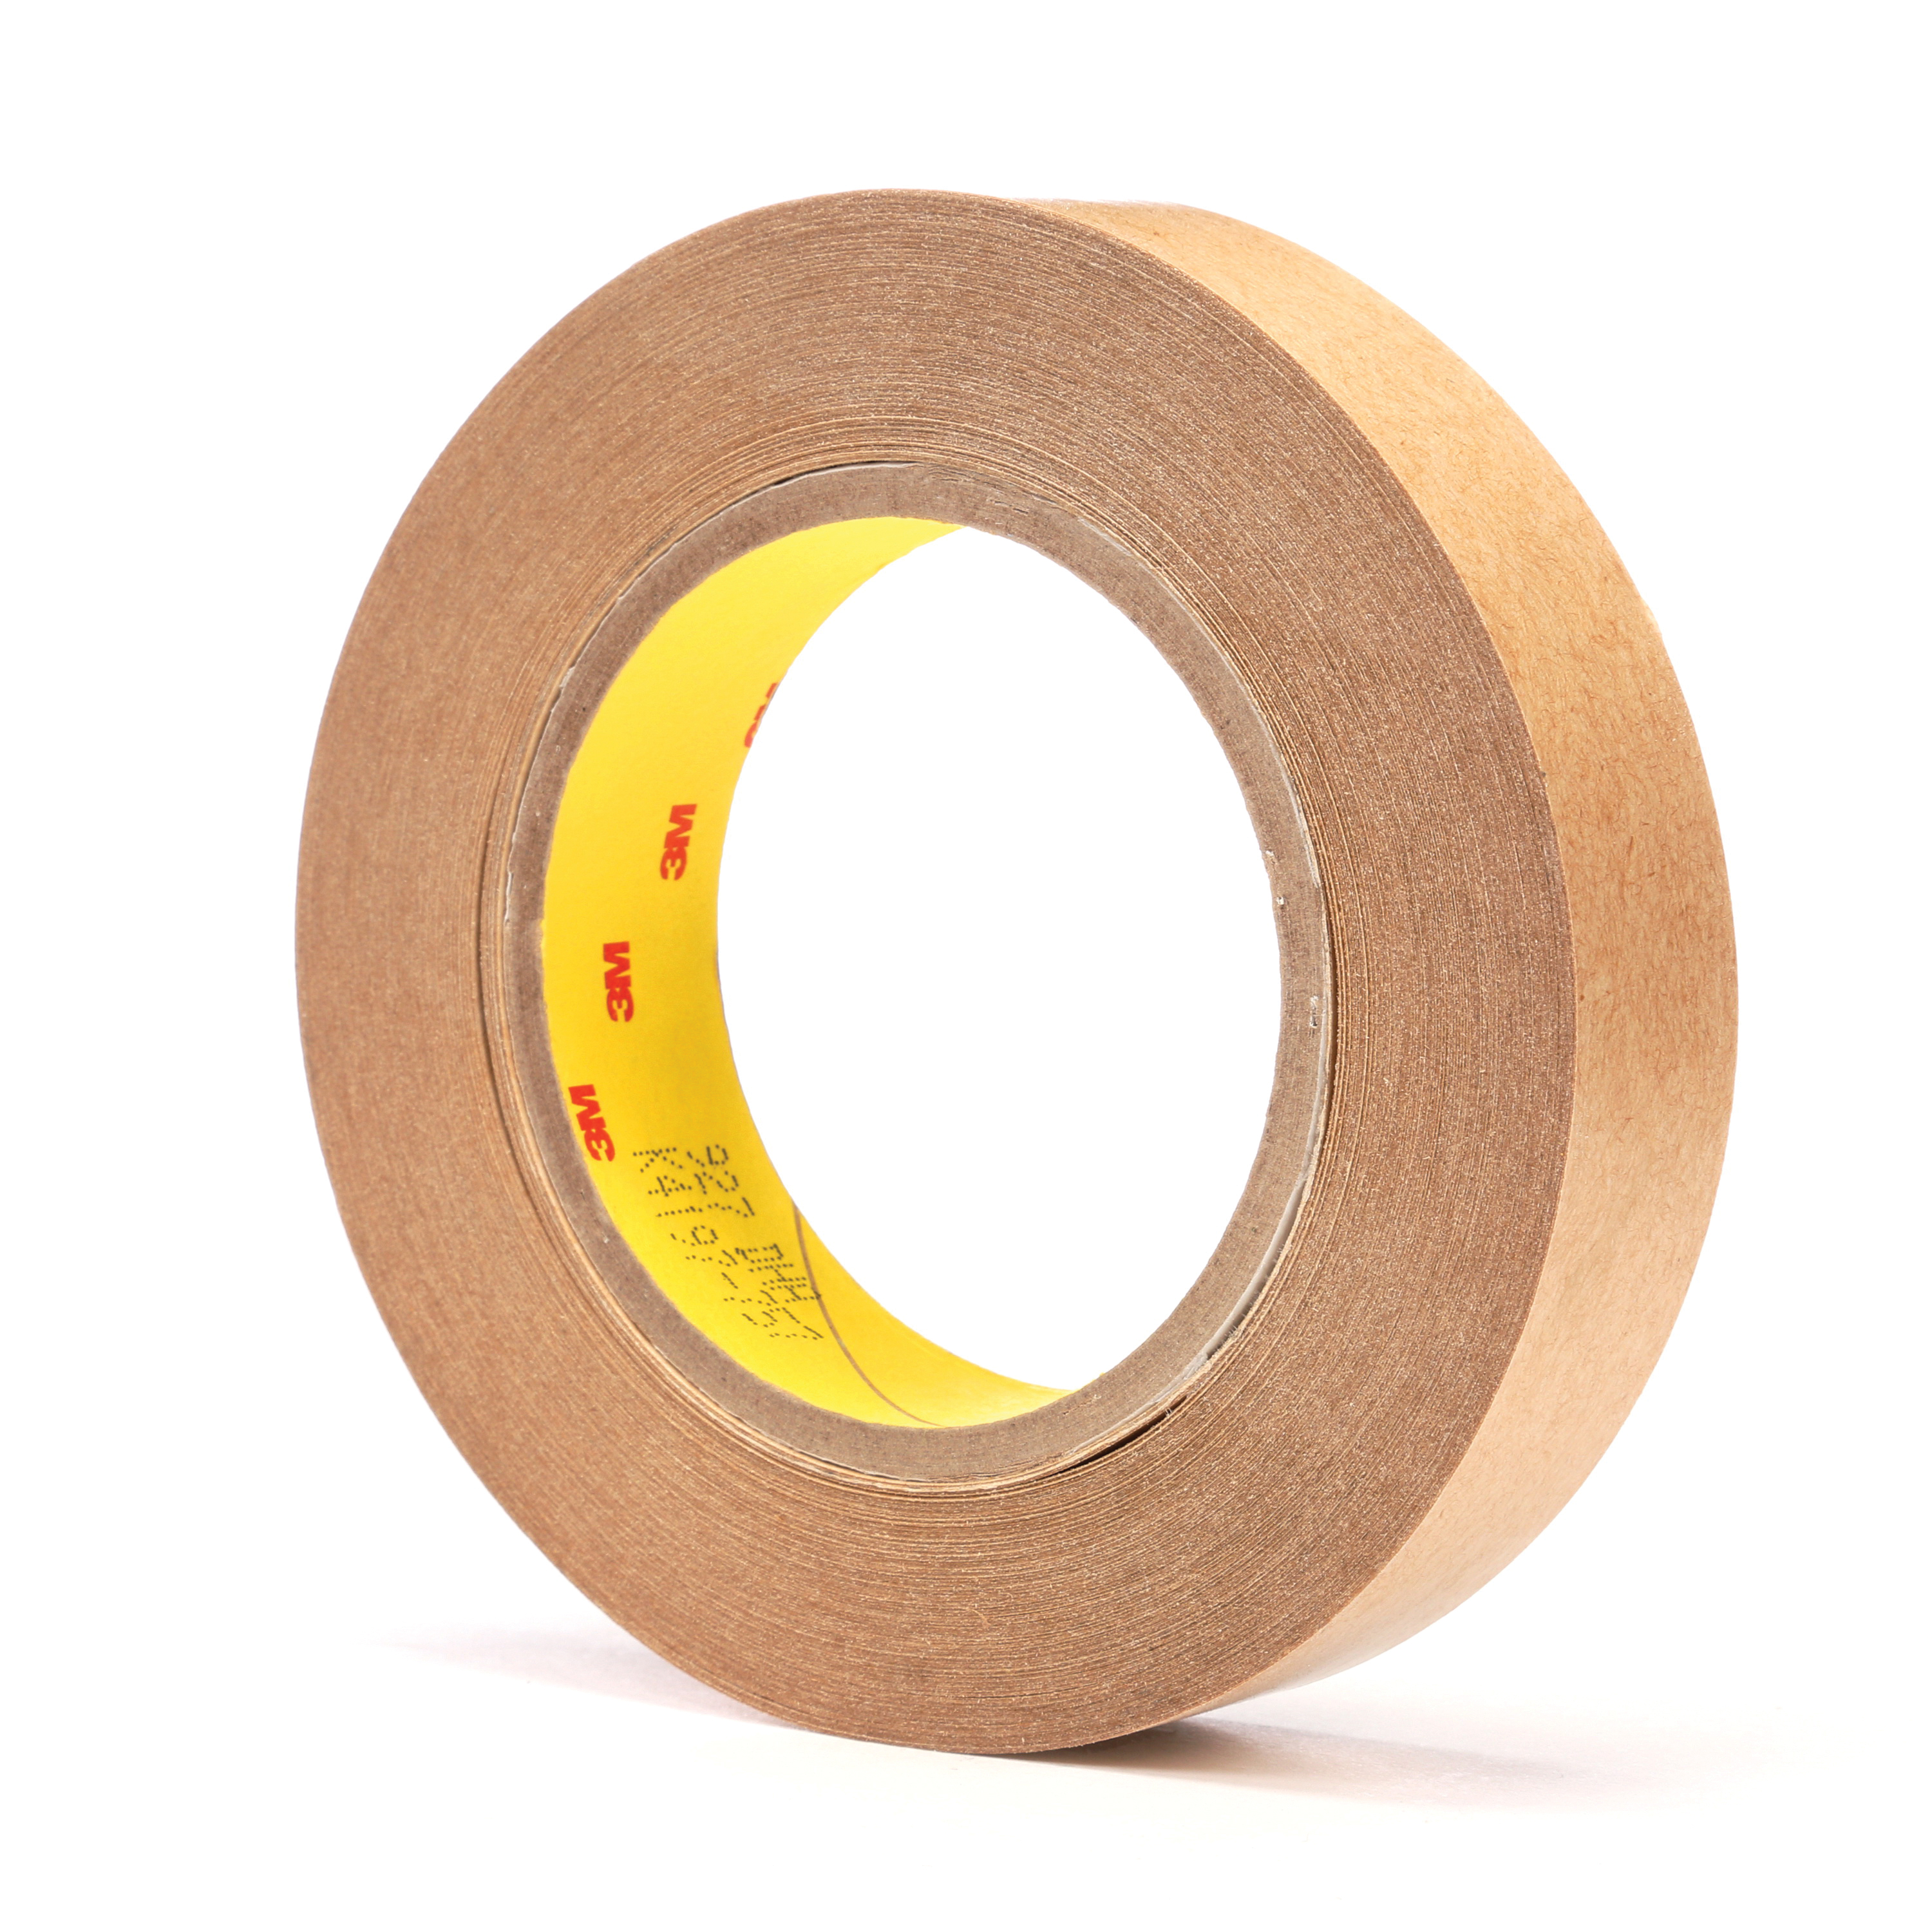 3M™ 021200-05278 High Tack Adhesive Transfer Tape, 60 yd L x 1 in W, 5.5 mil THK, 2 mil 300 Acrylic Adhesive, Clear